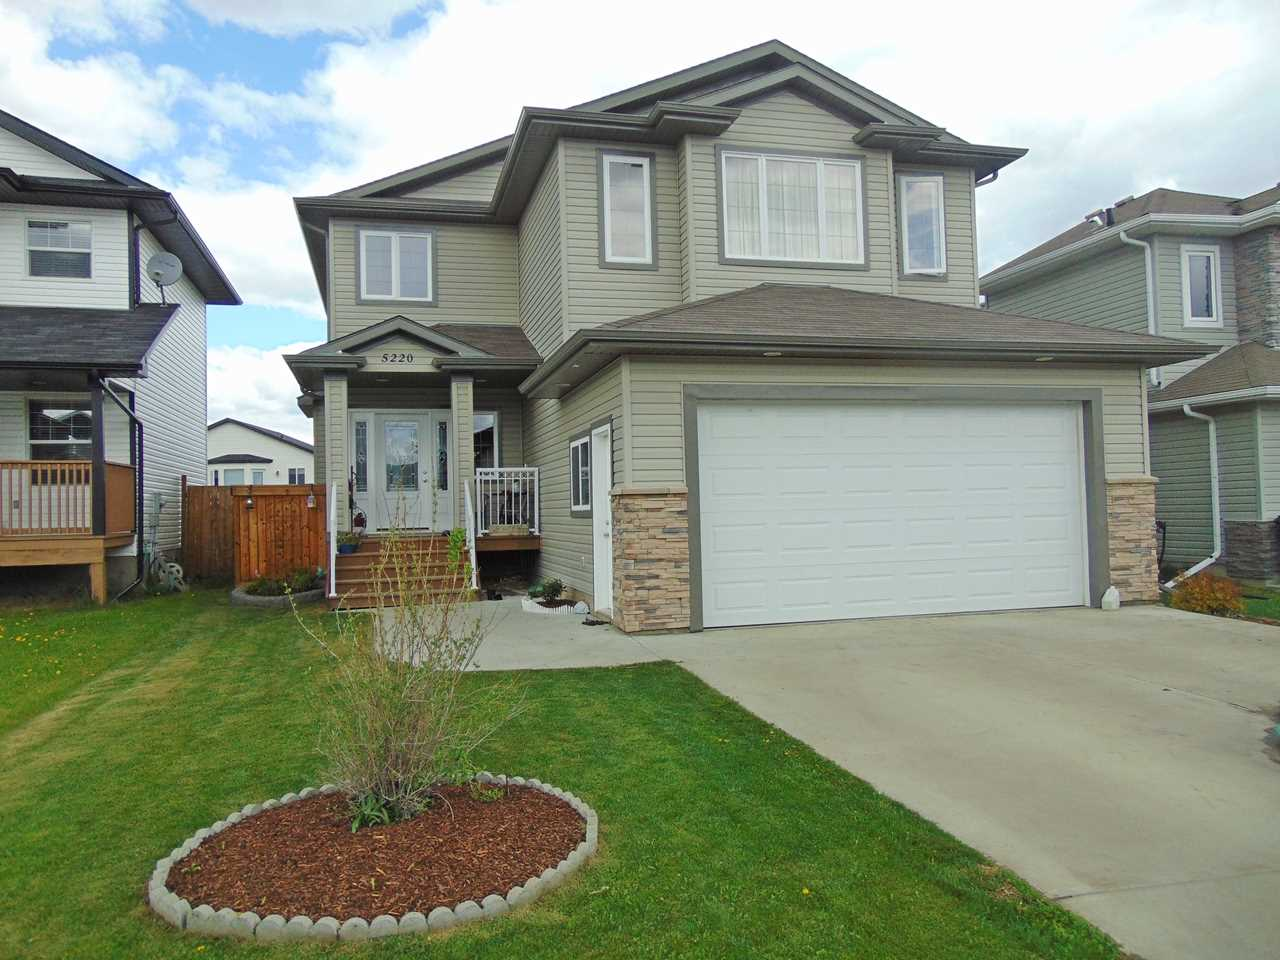 Photo 30: 5220 39 Avenue: Gibbons House for sale : MLS(r) # E4066111